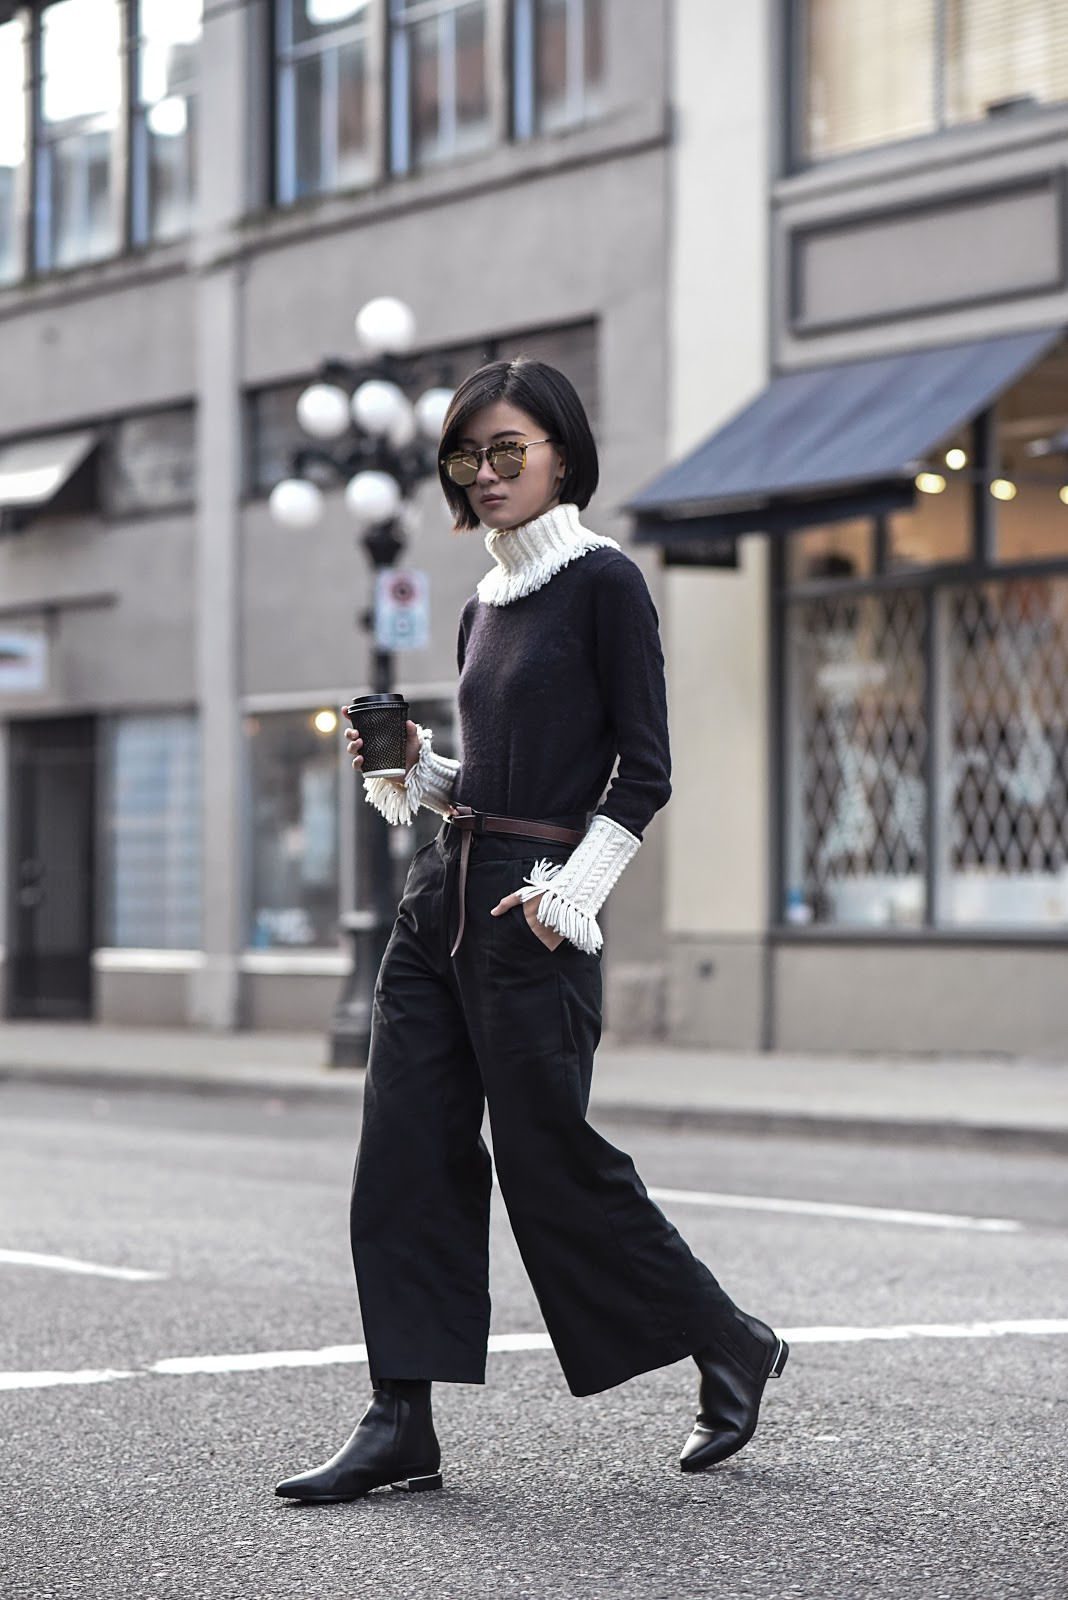 claire liu von vogue tory burch sweater kenzo boots karen walker sunglasses